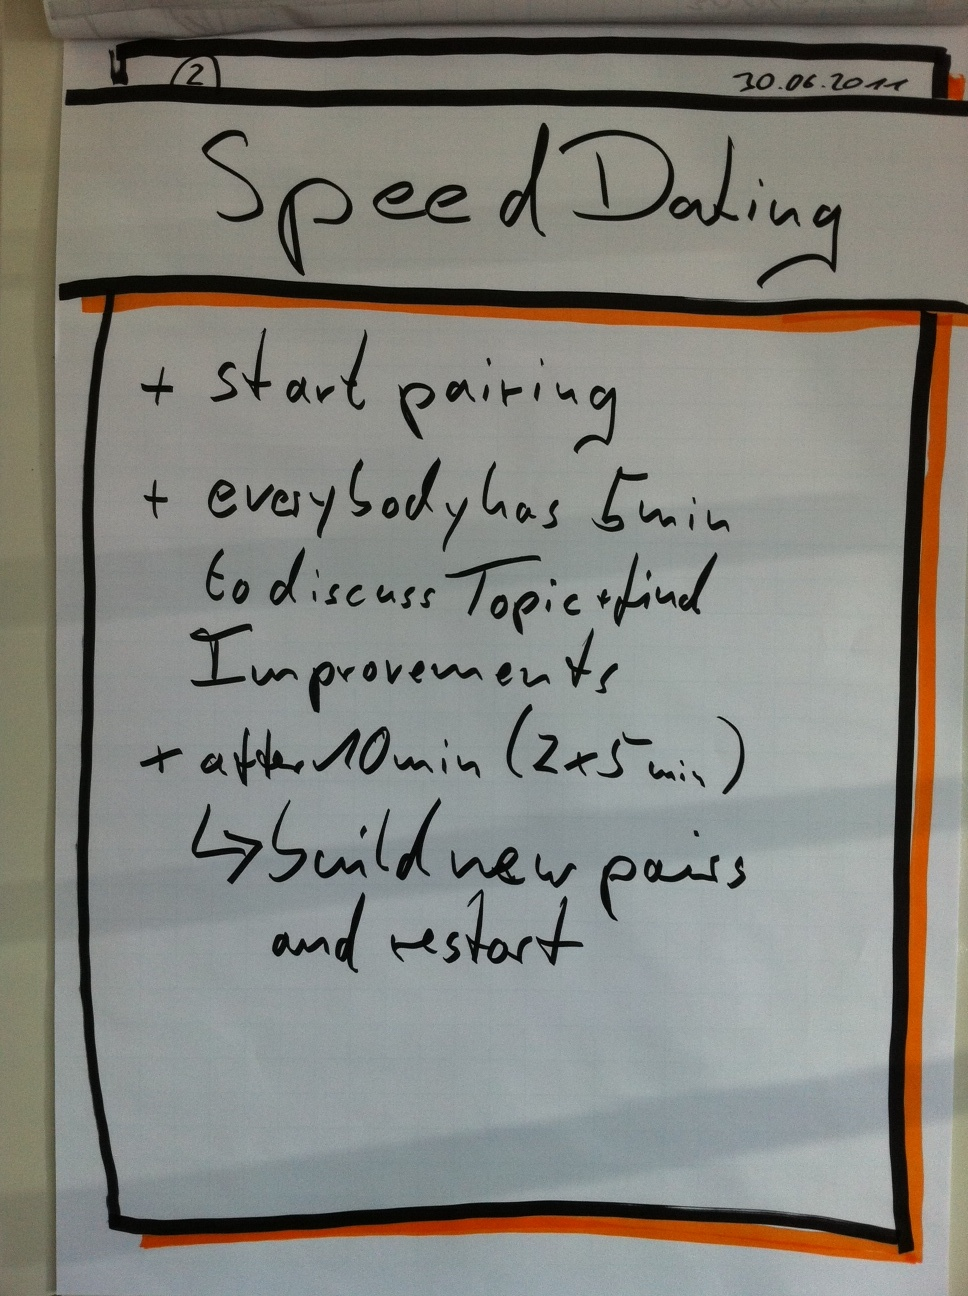 Speed dating icebreaker instructions